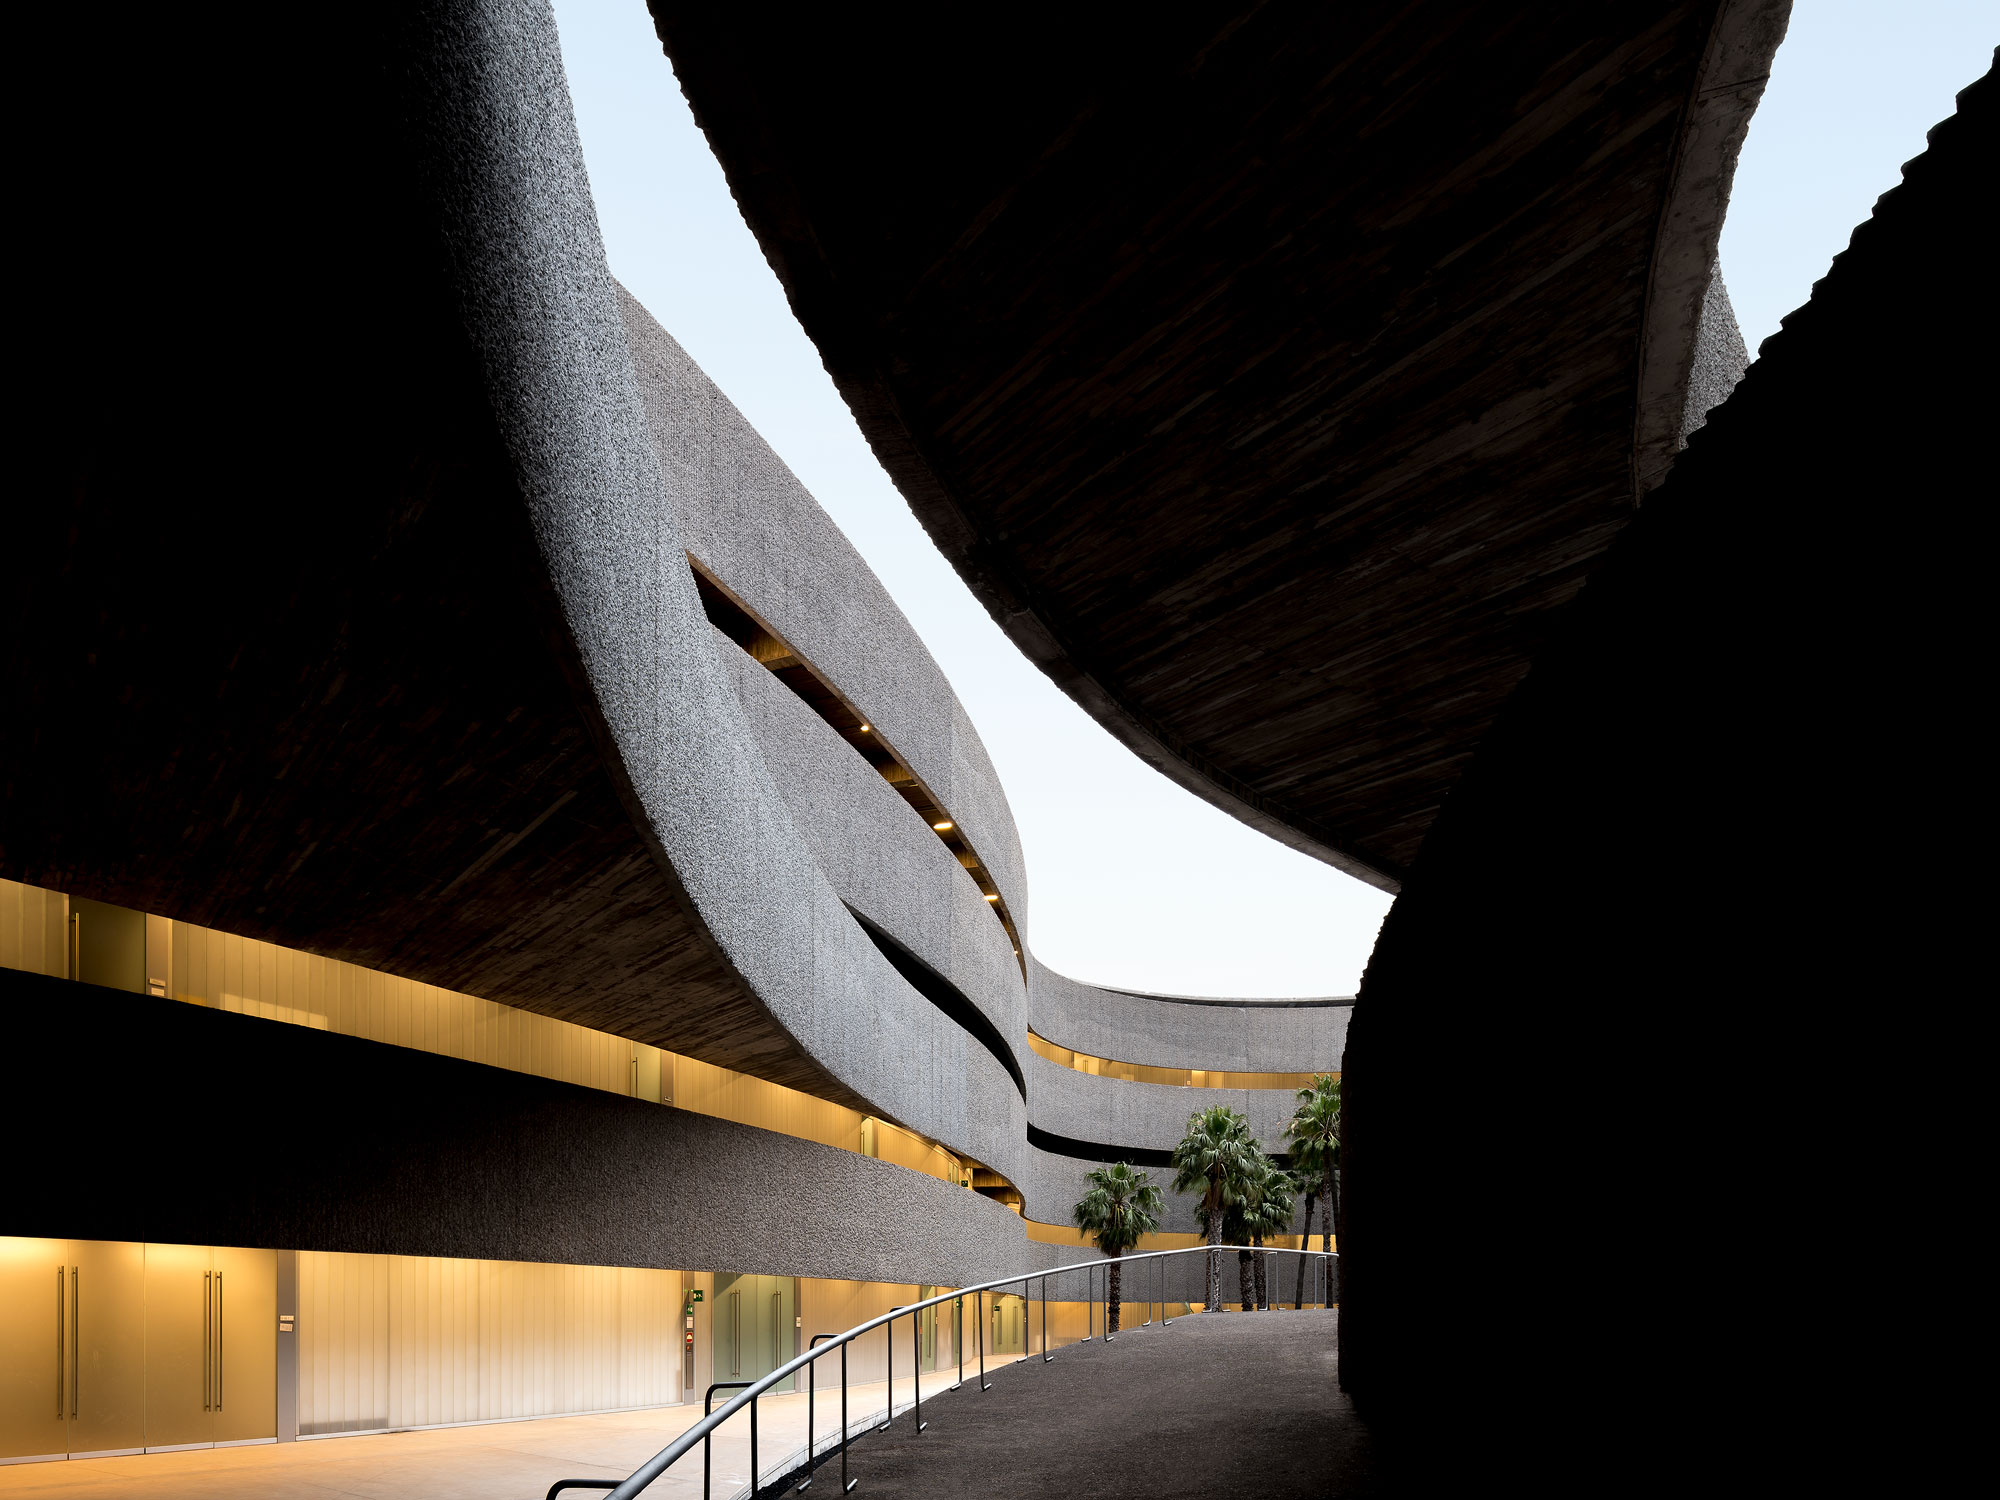 Architectuurfotograaf voor Faculty of Fine Arts - Tenerife, Spanje